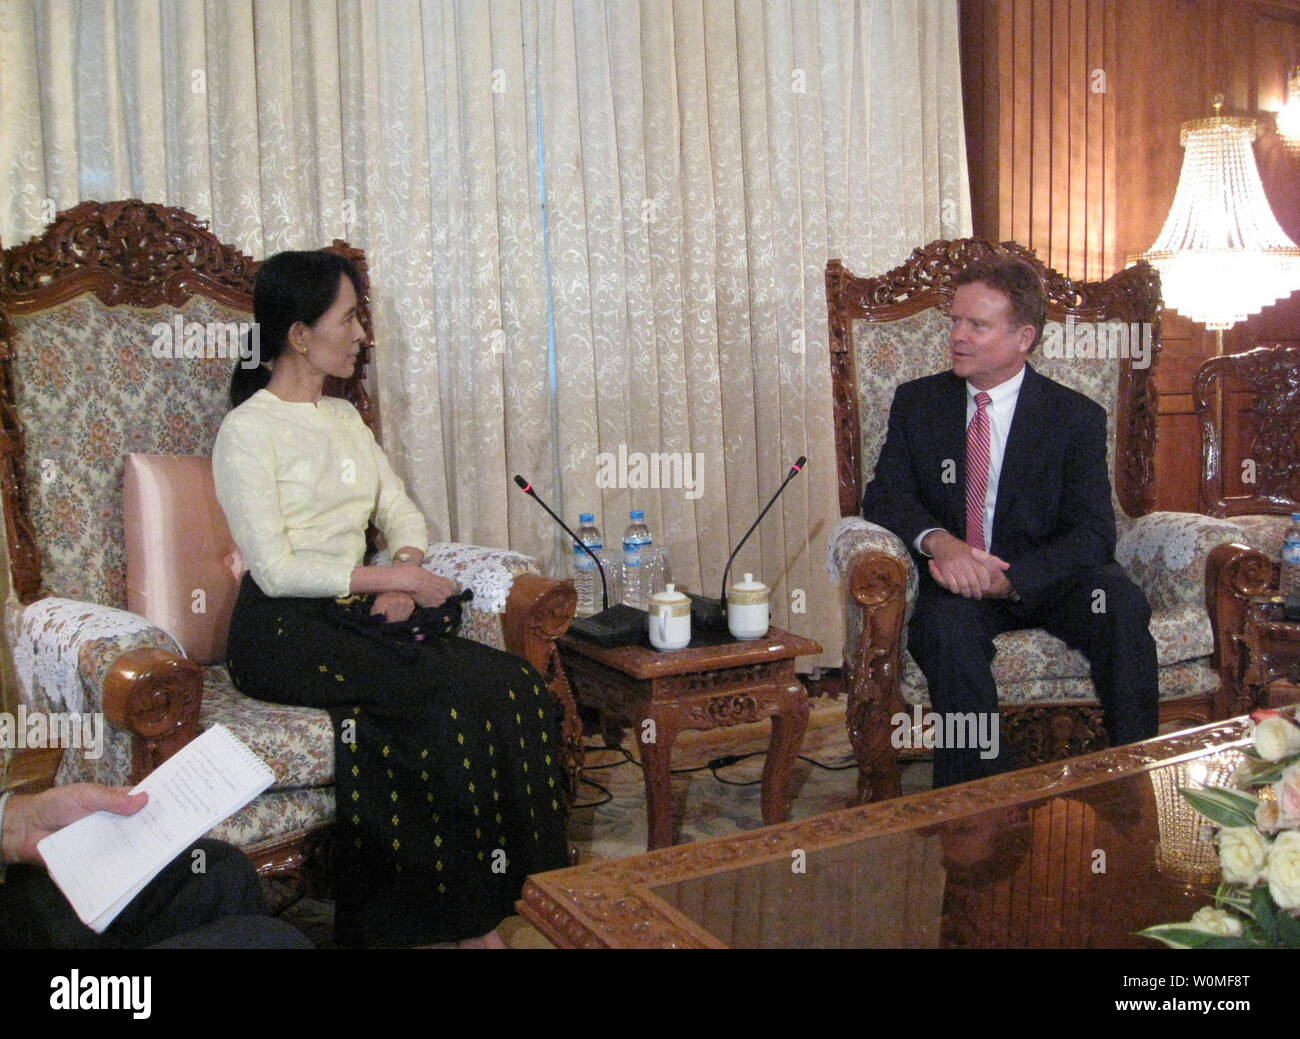 U.S. Sen. Jim Webb (D-VA) (R) meets with opposition leader Aung San Suu Kyi in Yangon, Myanmar on August 15, 2009. Suu Kyi has been detained for 14 of the past 20 years and was convicted of violating the terms of her house arrest by allowing American John Yettaw to stay at her home for two days. After Sen. Webb's visit, the generals of Myanmar agreed to release Yettaw, who was sentenced to seven years of hard labor. UPI/Sen. Webb's office - Stock Image